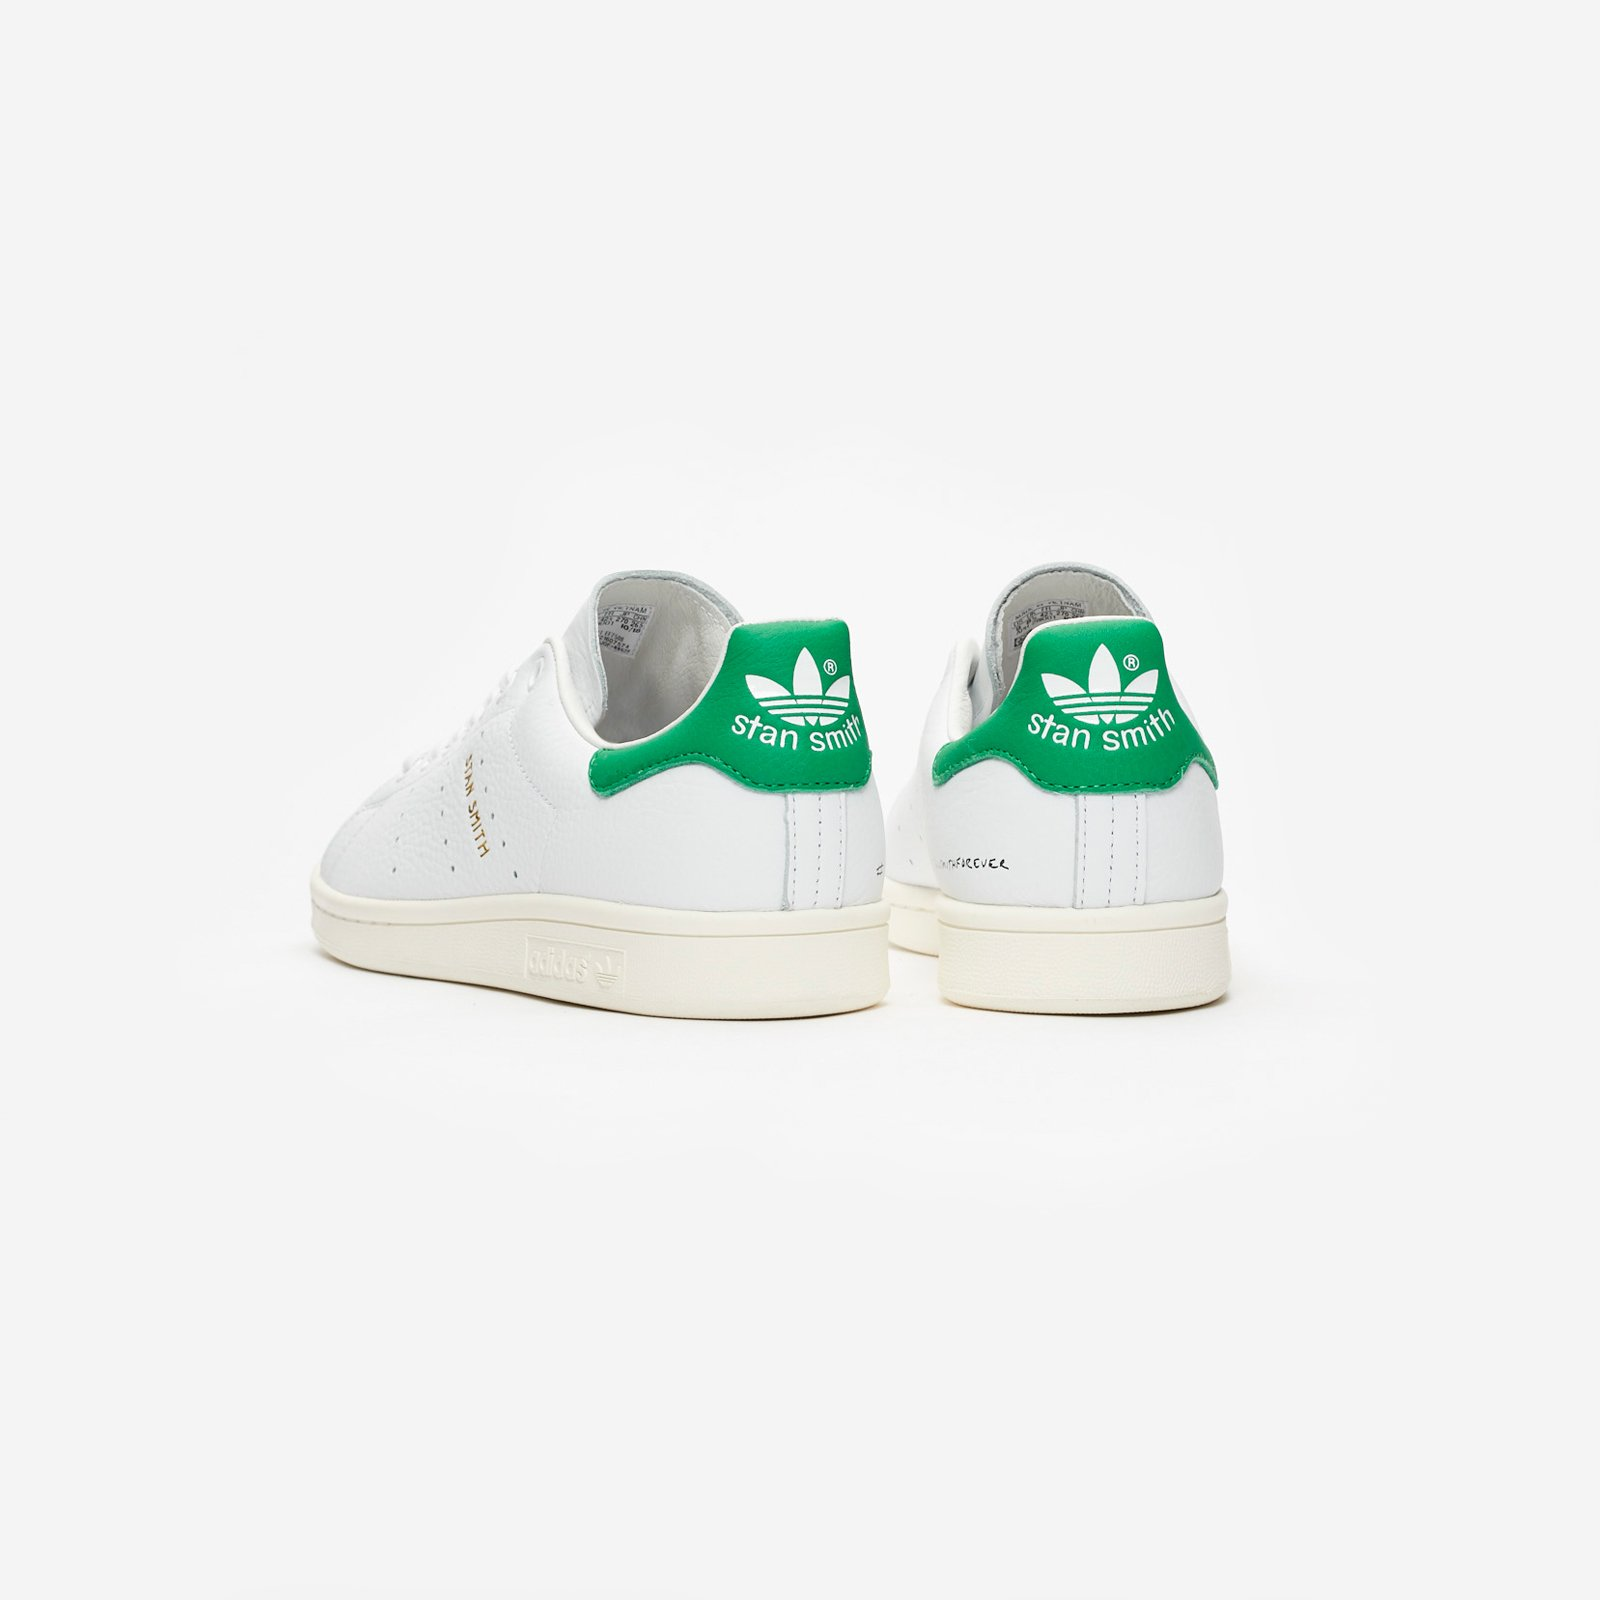 adidas Originals Stan Smith adidas Originals Stan Smith ... c07424228